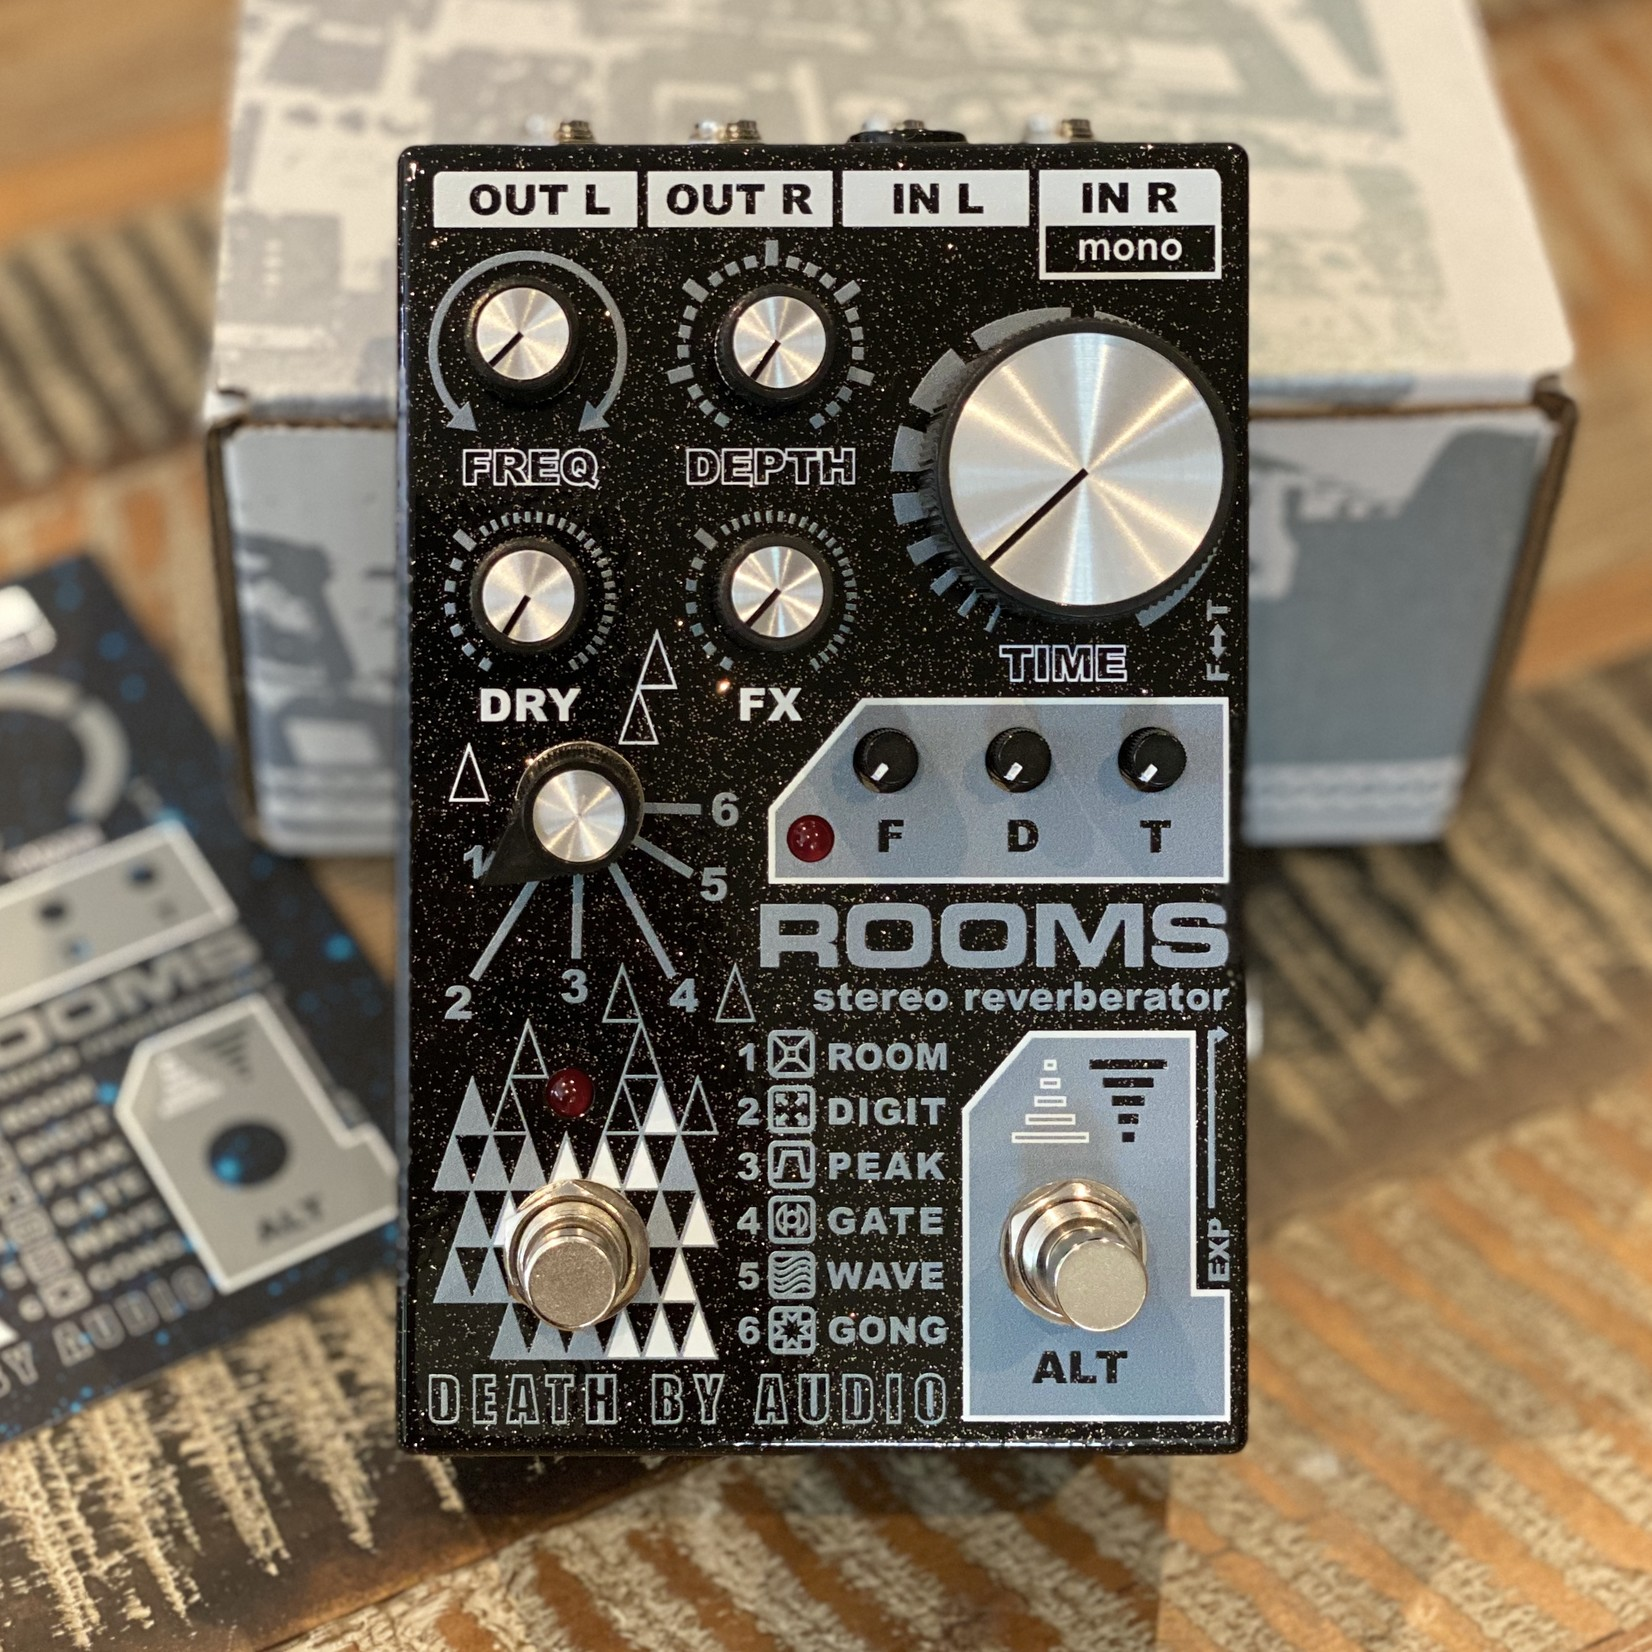 Death By Audio Death By Audio Rooms Stereo Reverberator (2020) - In Stock and Shipping Now